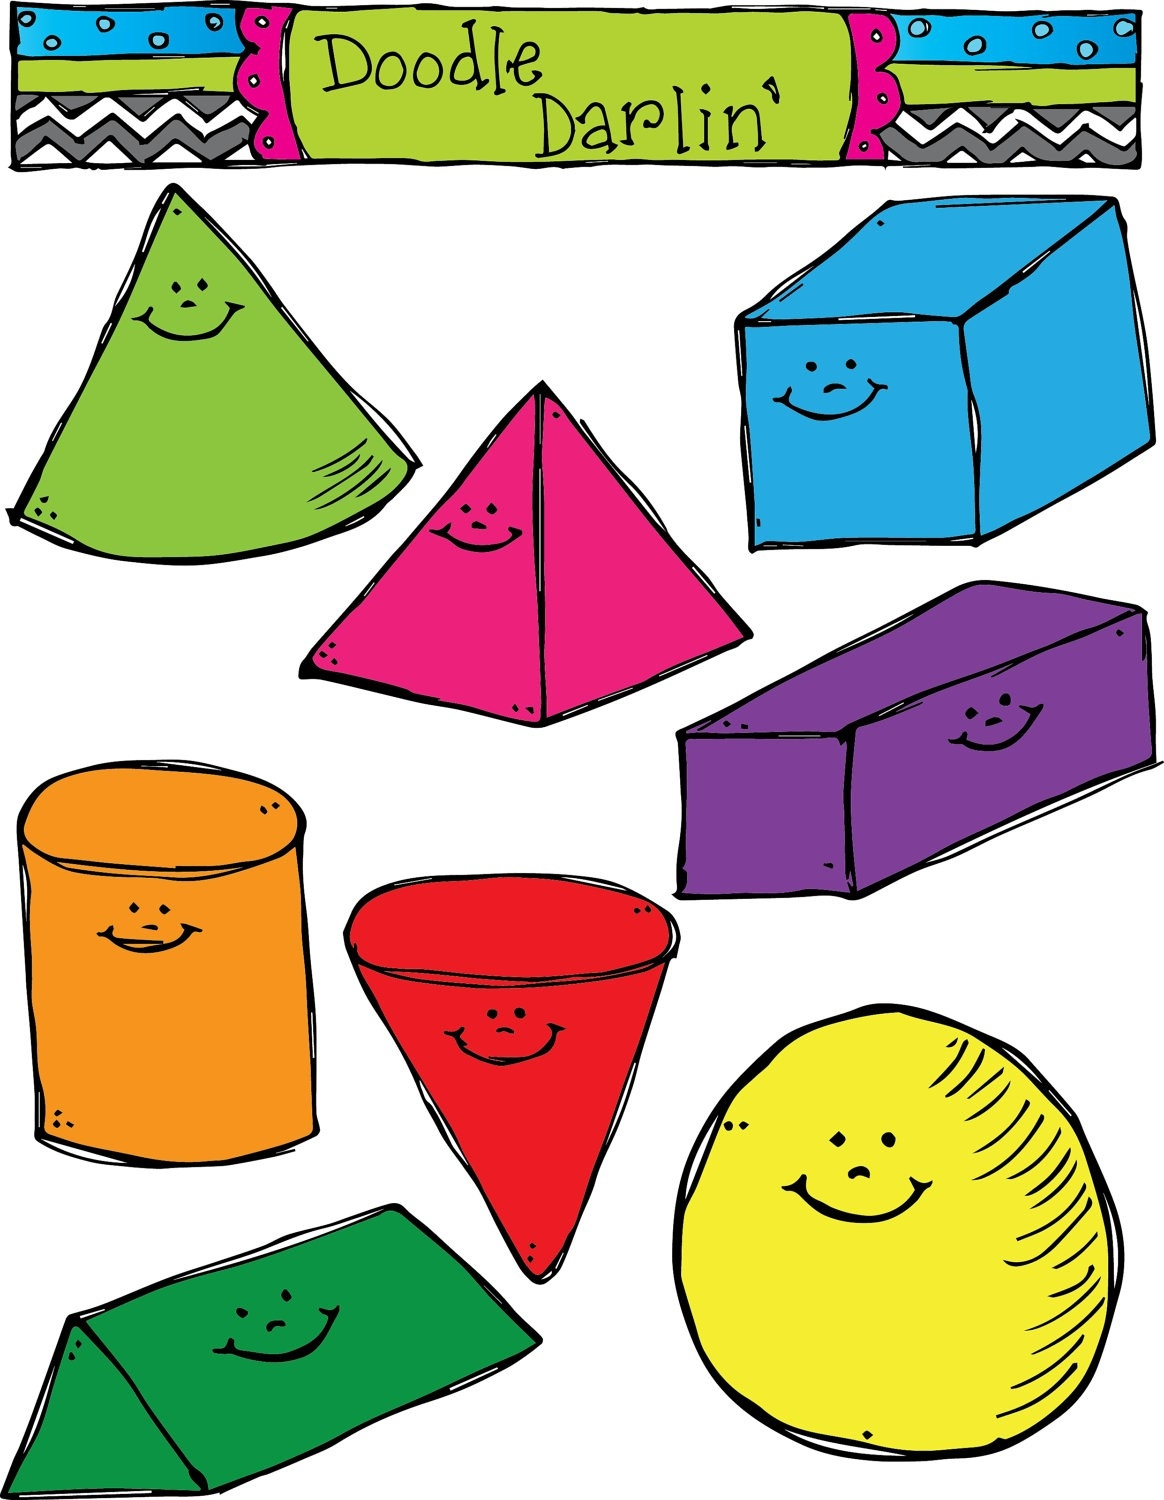 3D Shapes Clipart pertaining to 3D Shapes Clip Art 19543